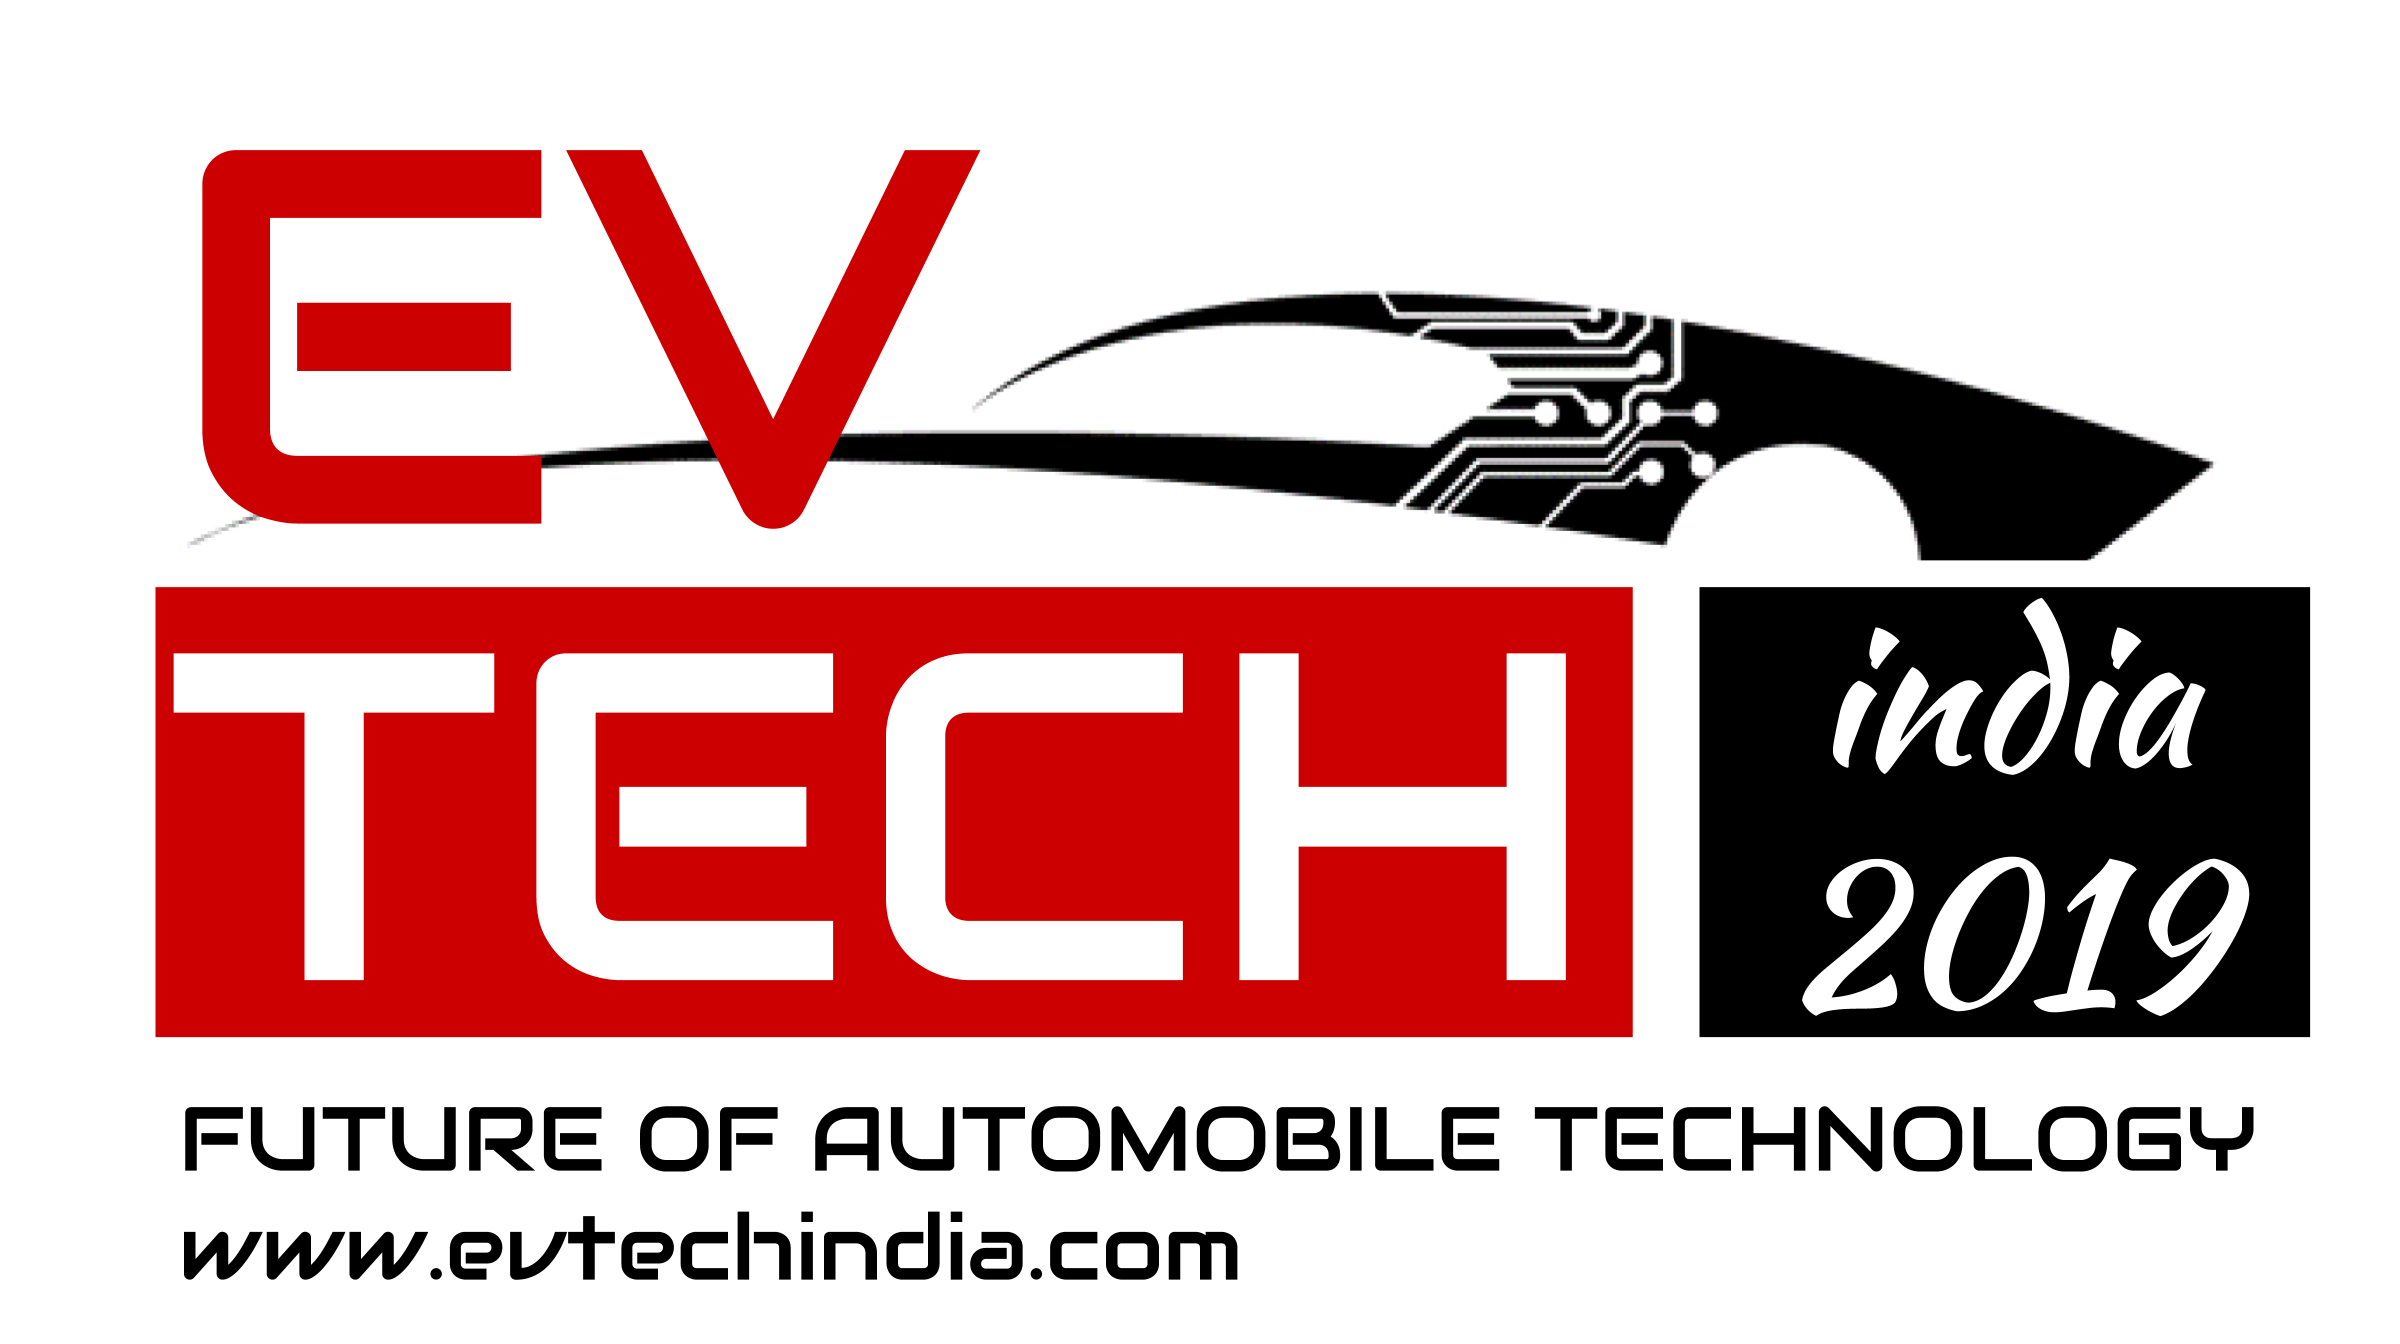 EV Tech India 2019- E-mobility Conference In Bengaluru